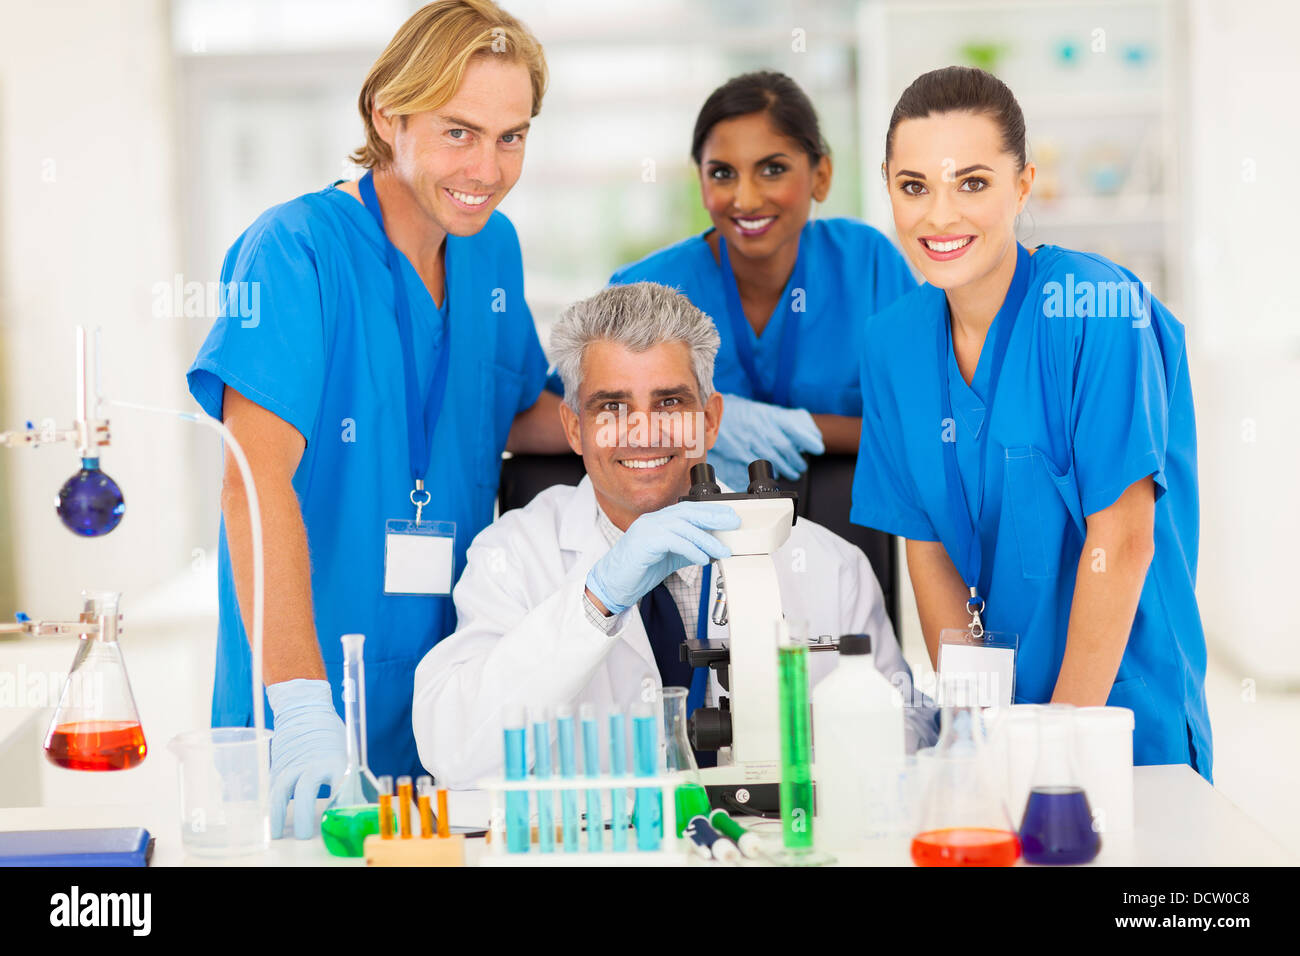 cheerful senior scientist with group of chemistry students in the lab - Stock Image